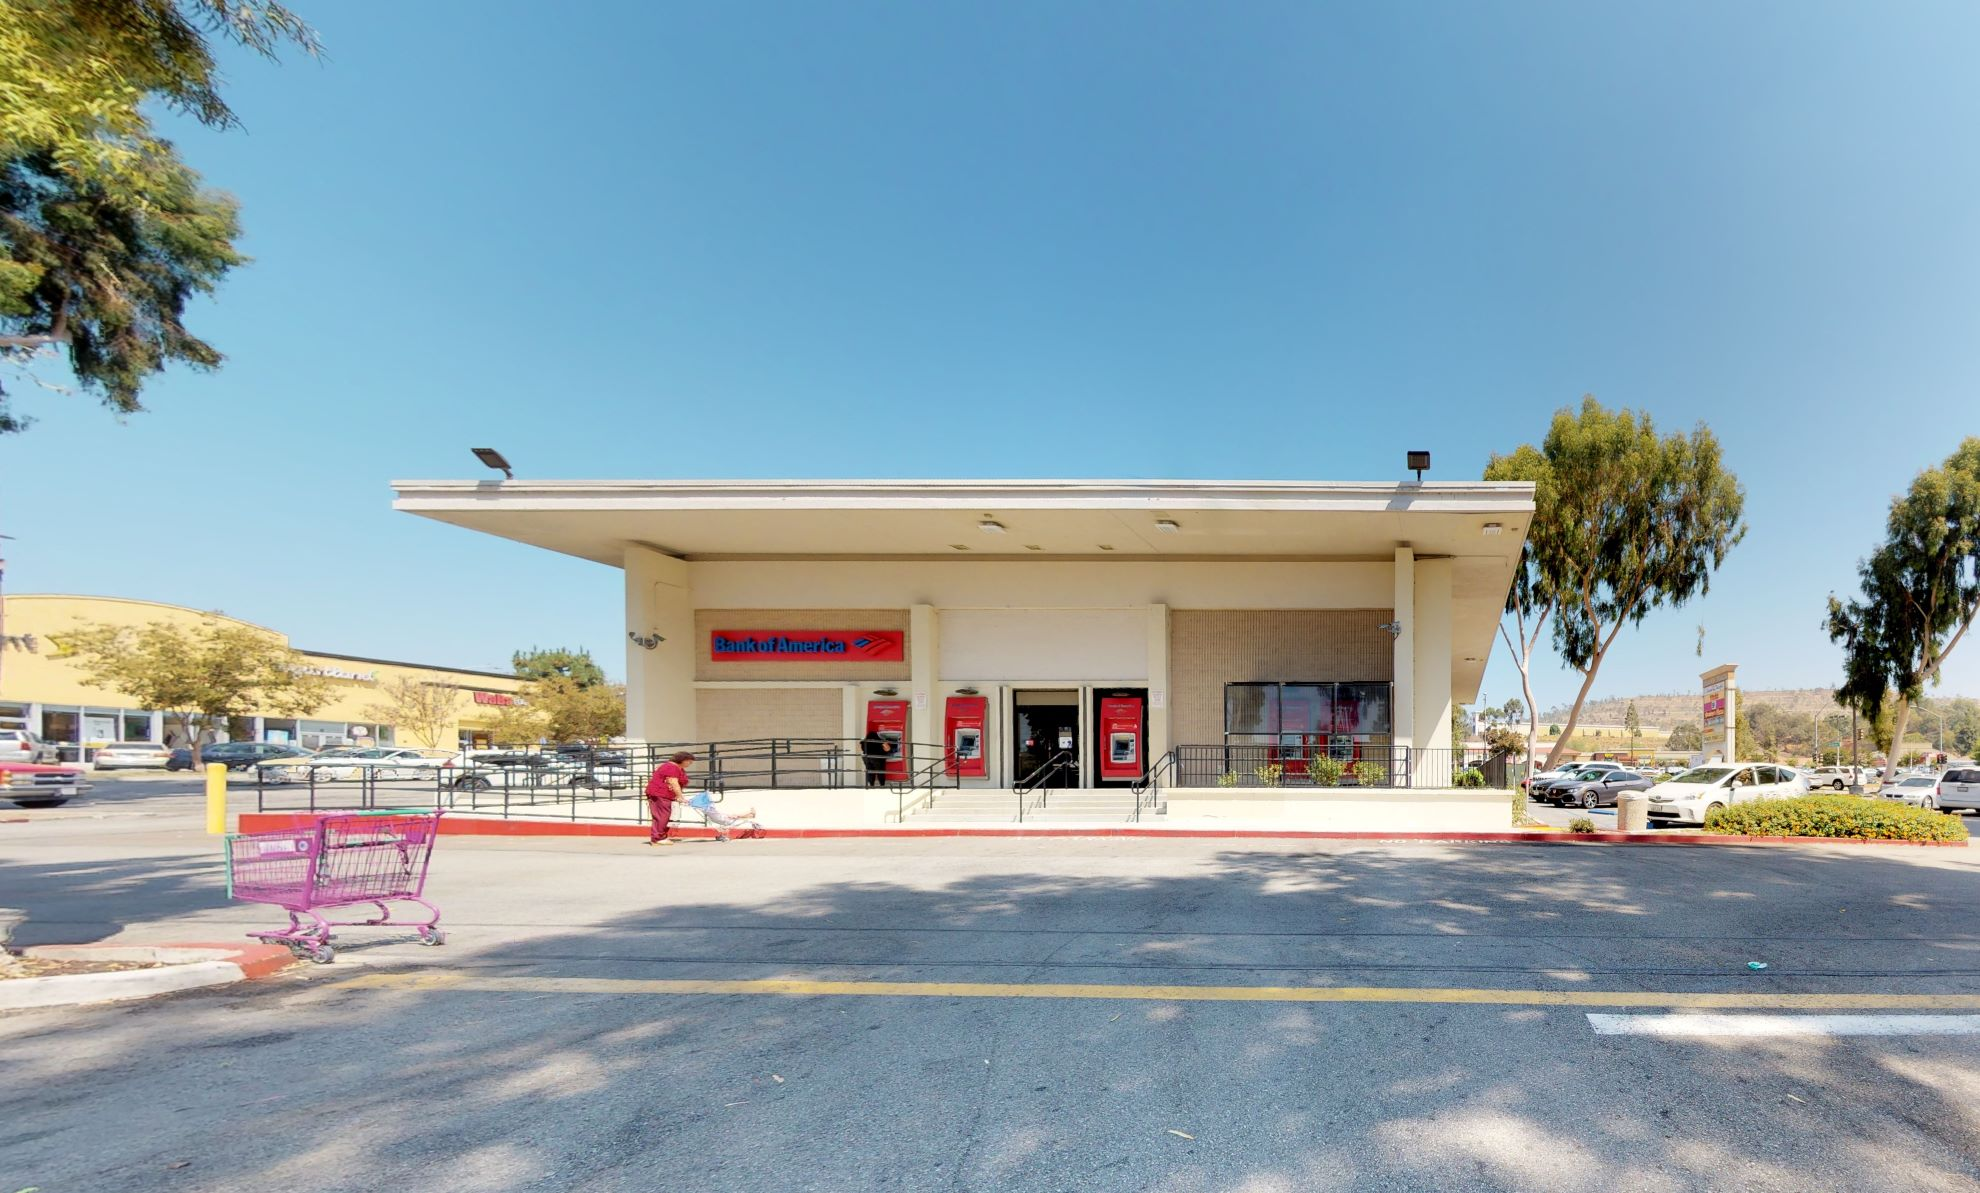 Bank of America financial center with walk-up ATM | 1520 E Amar Rd, West Covina, CA 91792